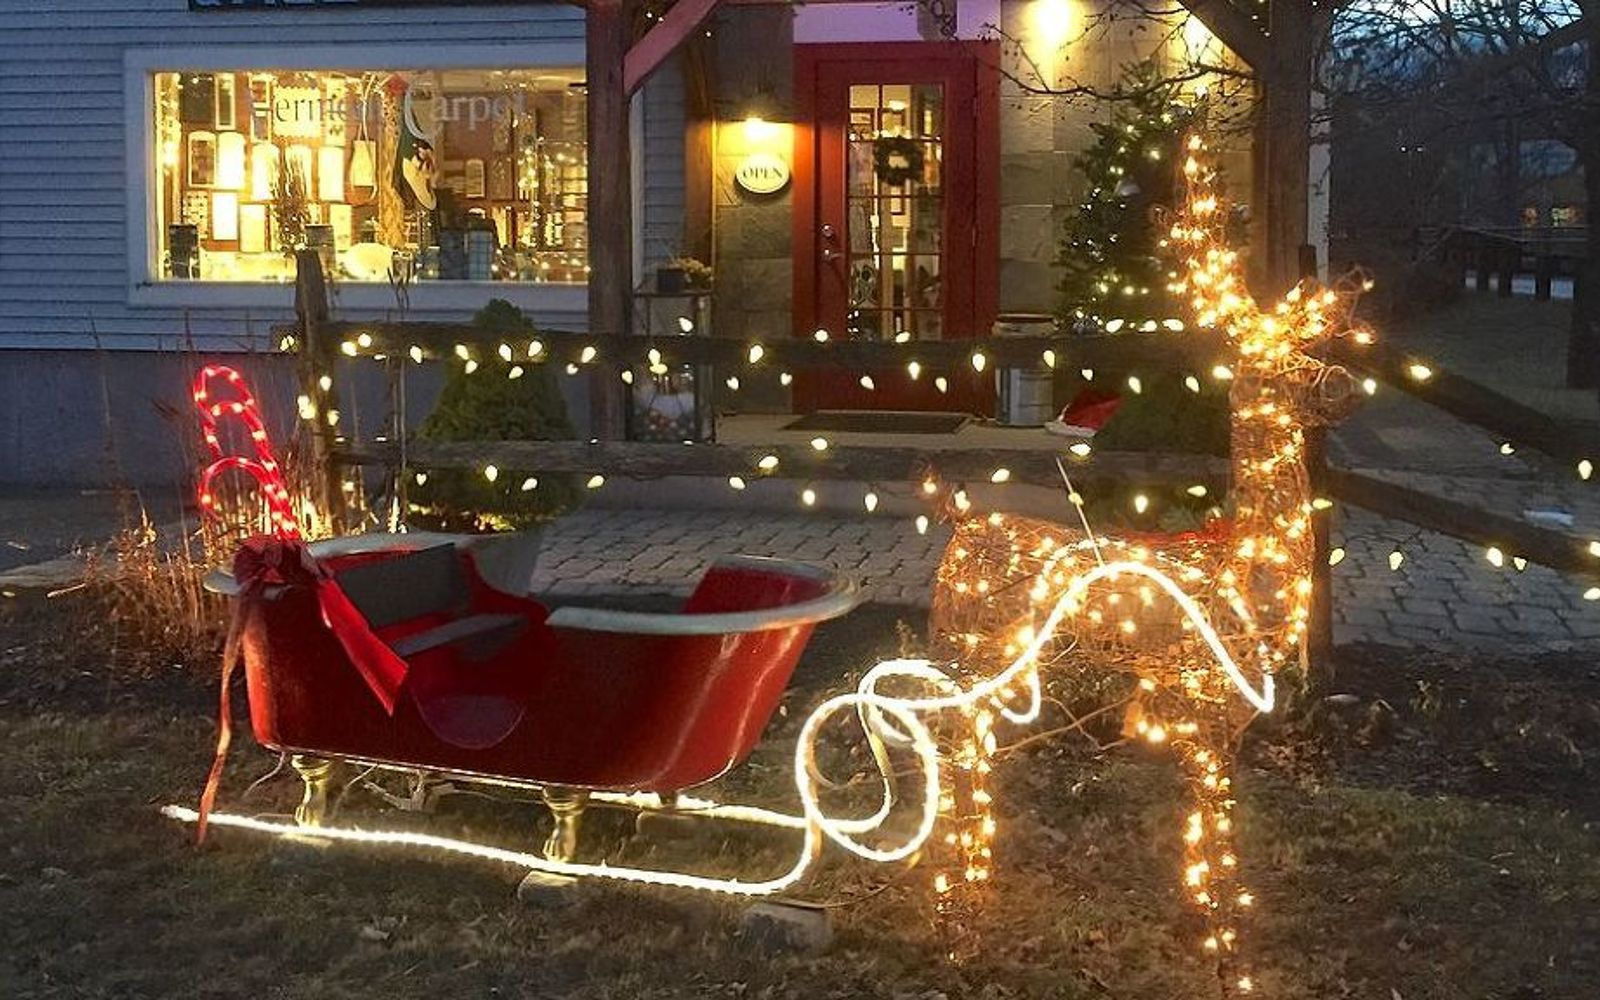 s 11 easy ways to refresh your old bathtub, Transform The Tub Into Santa s Sleigh